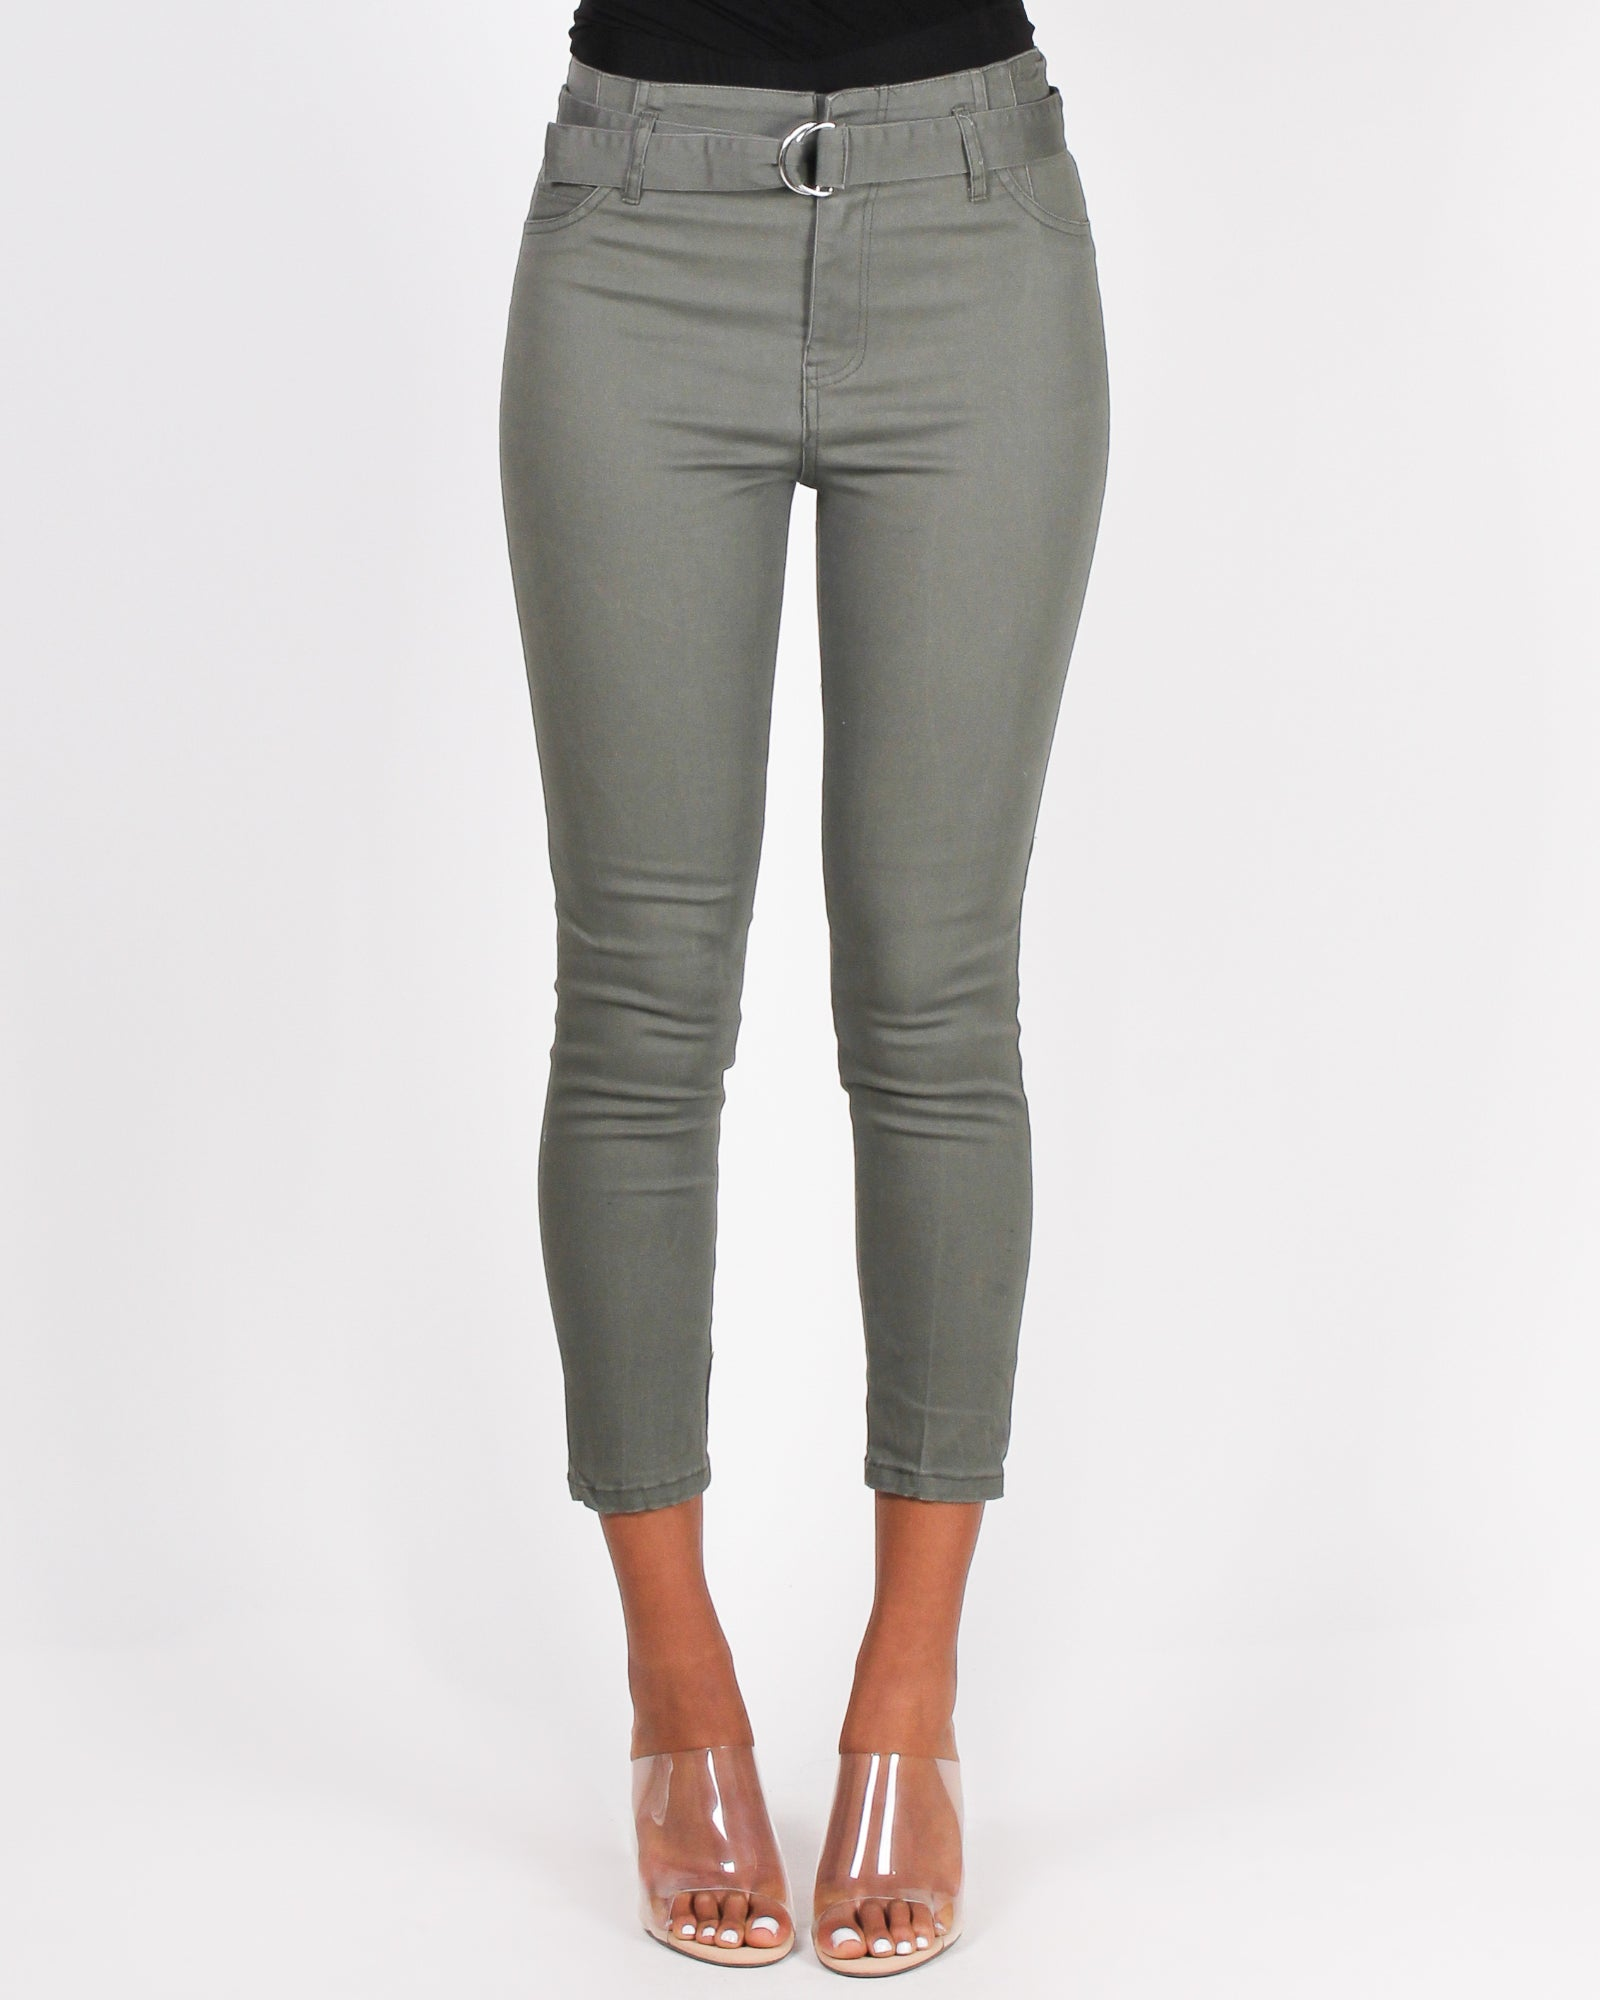 Let Your Feet Wander and Soul Ignite Pants (Olive)